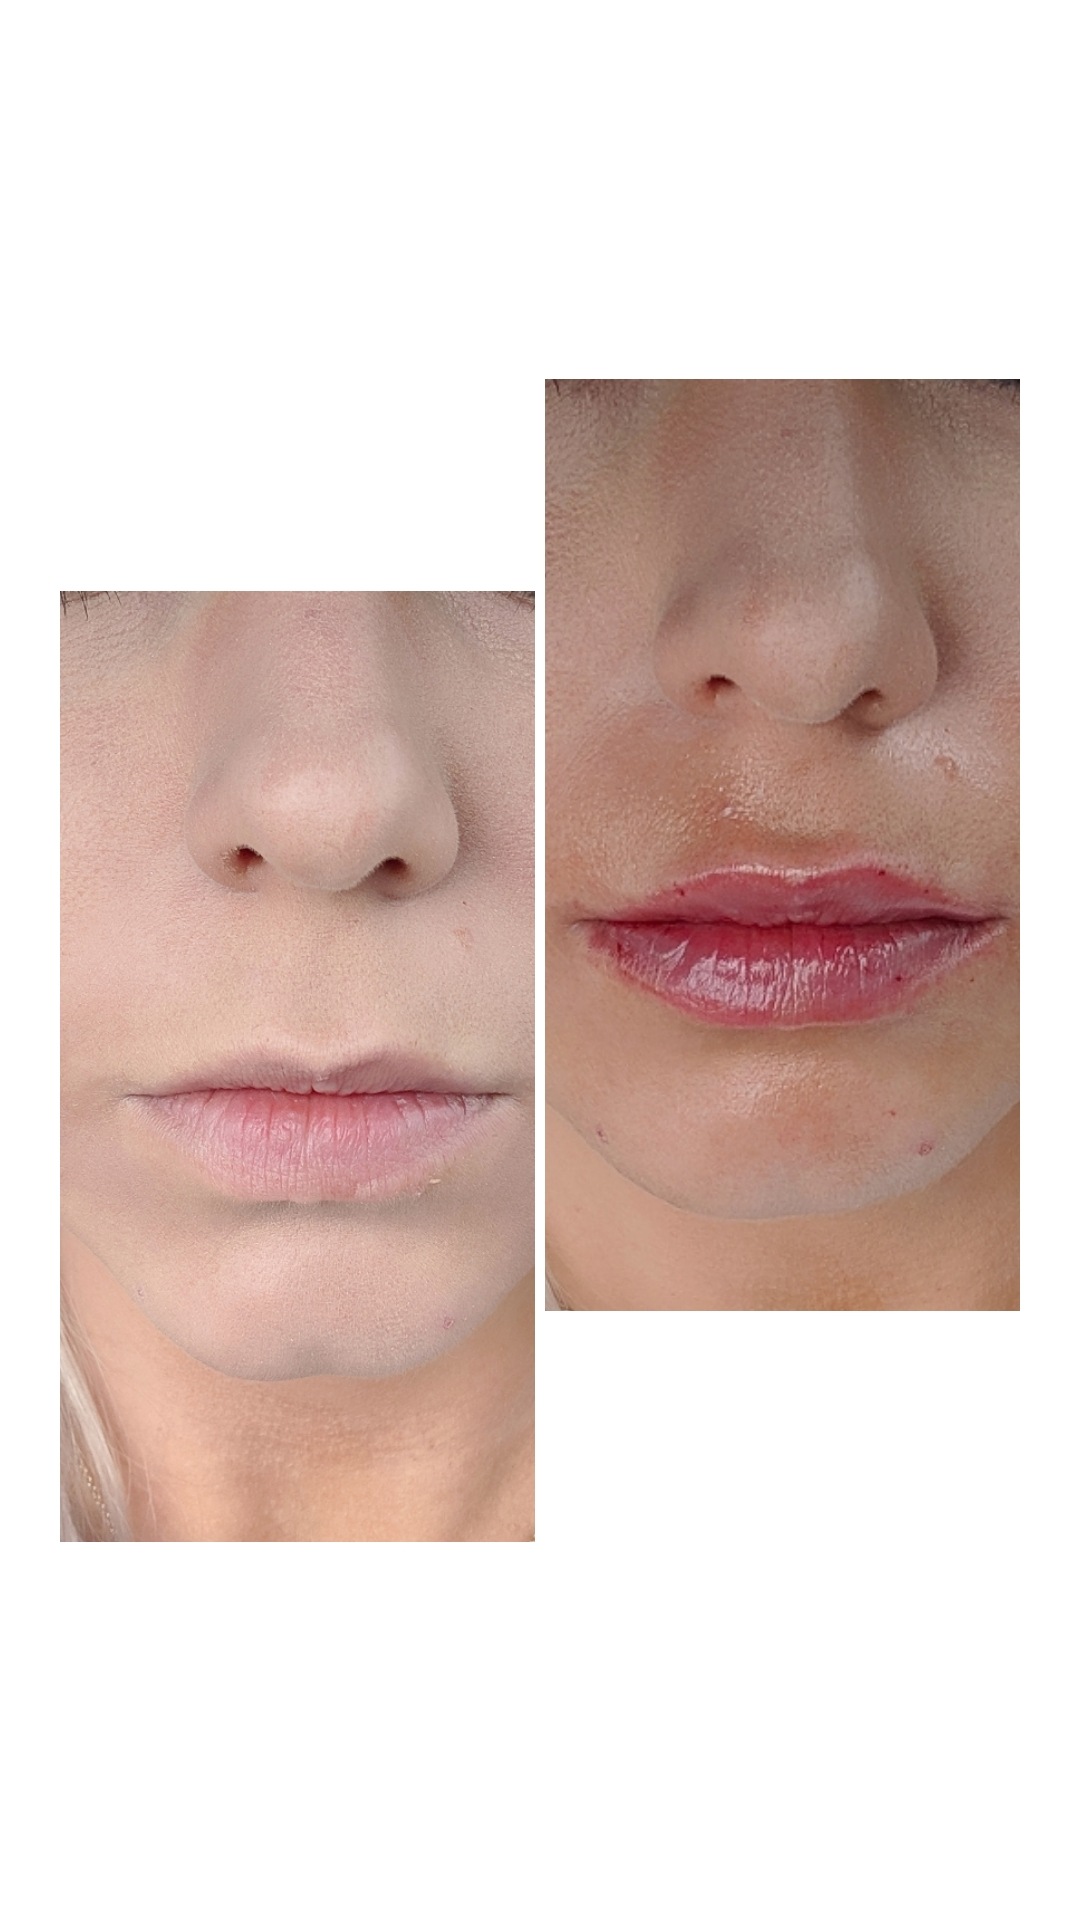 Are Lip Injections Worth It?: A before and after of lip injections using 0.5ml Restylane Defyne lip filler. Do lip injections hurt? What is getting lip injections like? And the best place for lip injections in Kansas City Olathe, Johnson County Dermatology review.